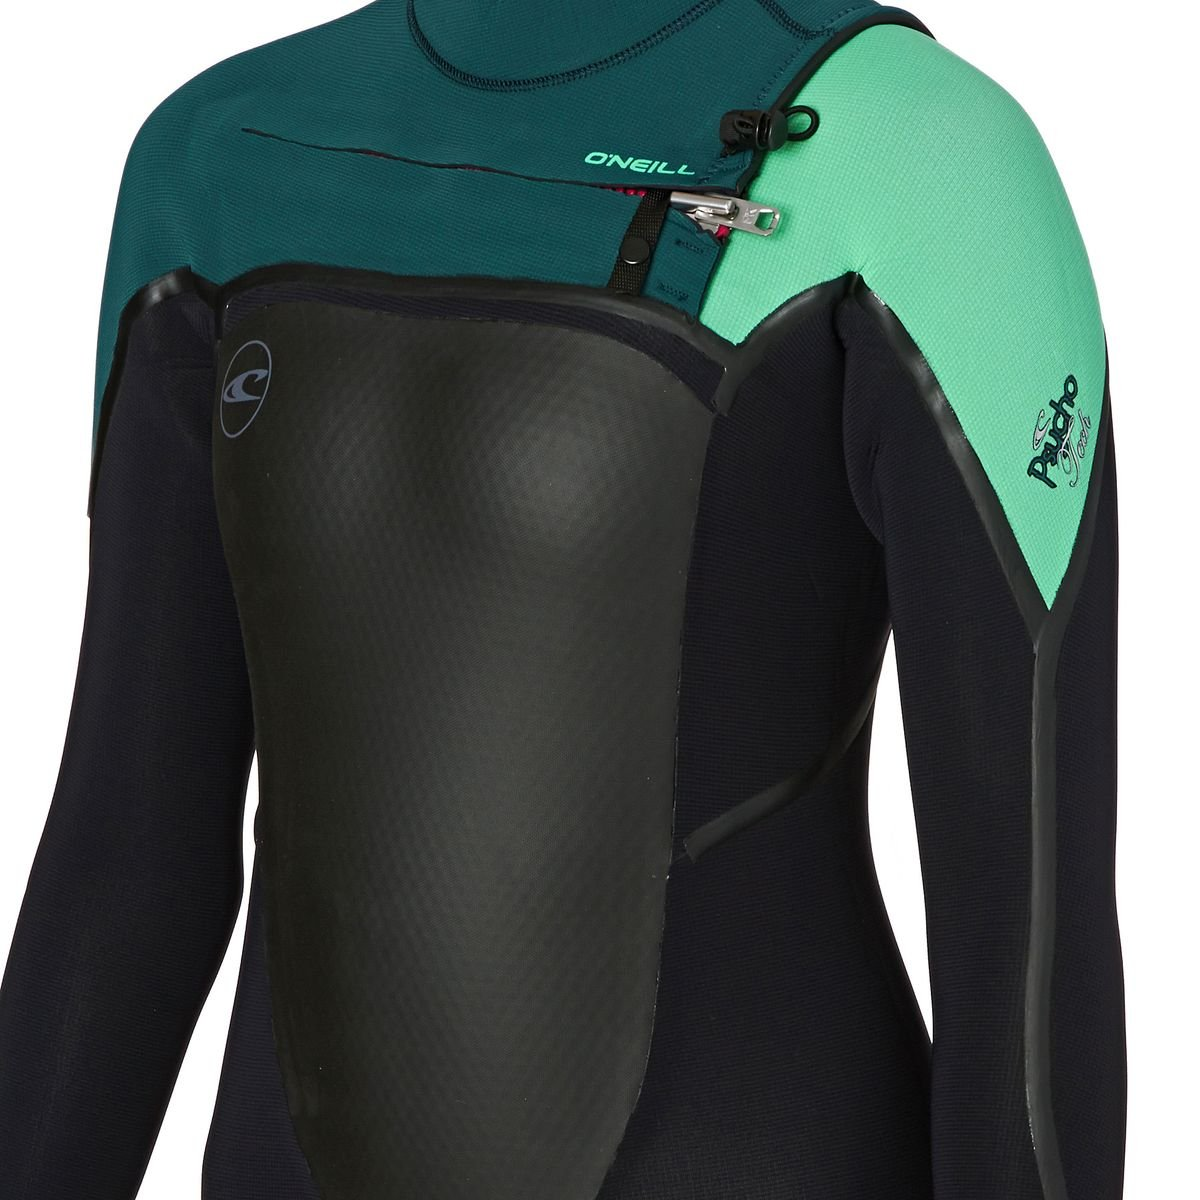 O'Neill 2017 Ladies Psycho Tech 5/4mm Chest Zip Wetsuit BLACK/TEAL/SEAGLASS  4582: Amazon.co.uk: Sports & Outdoors